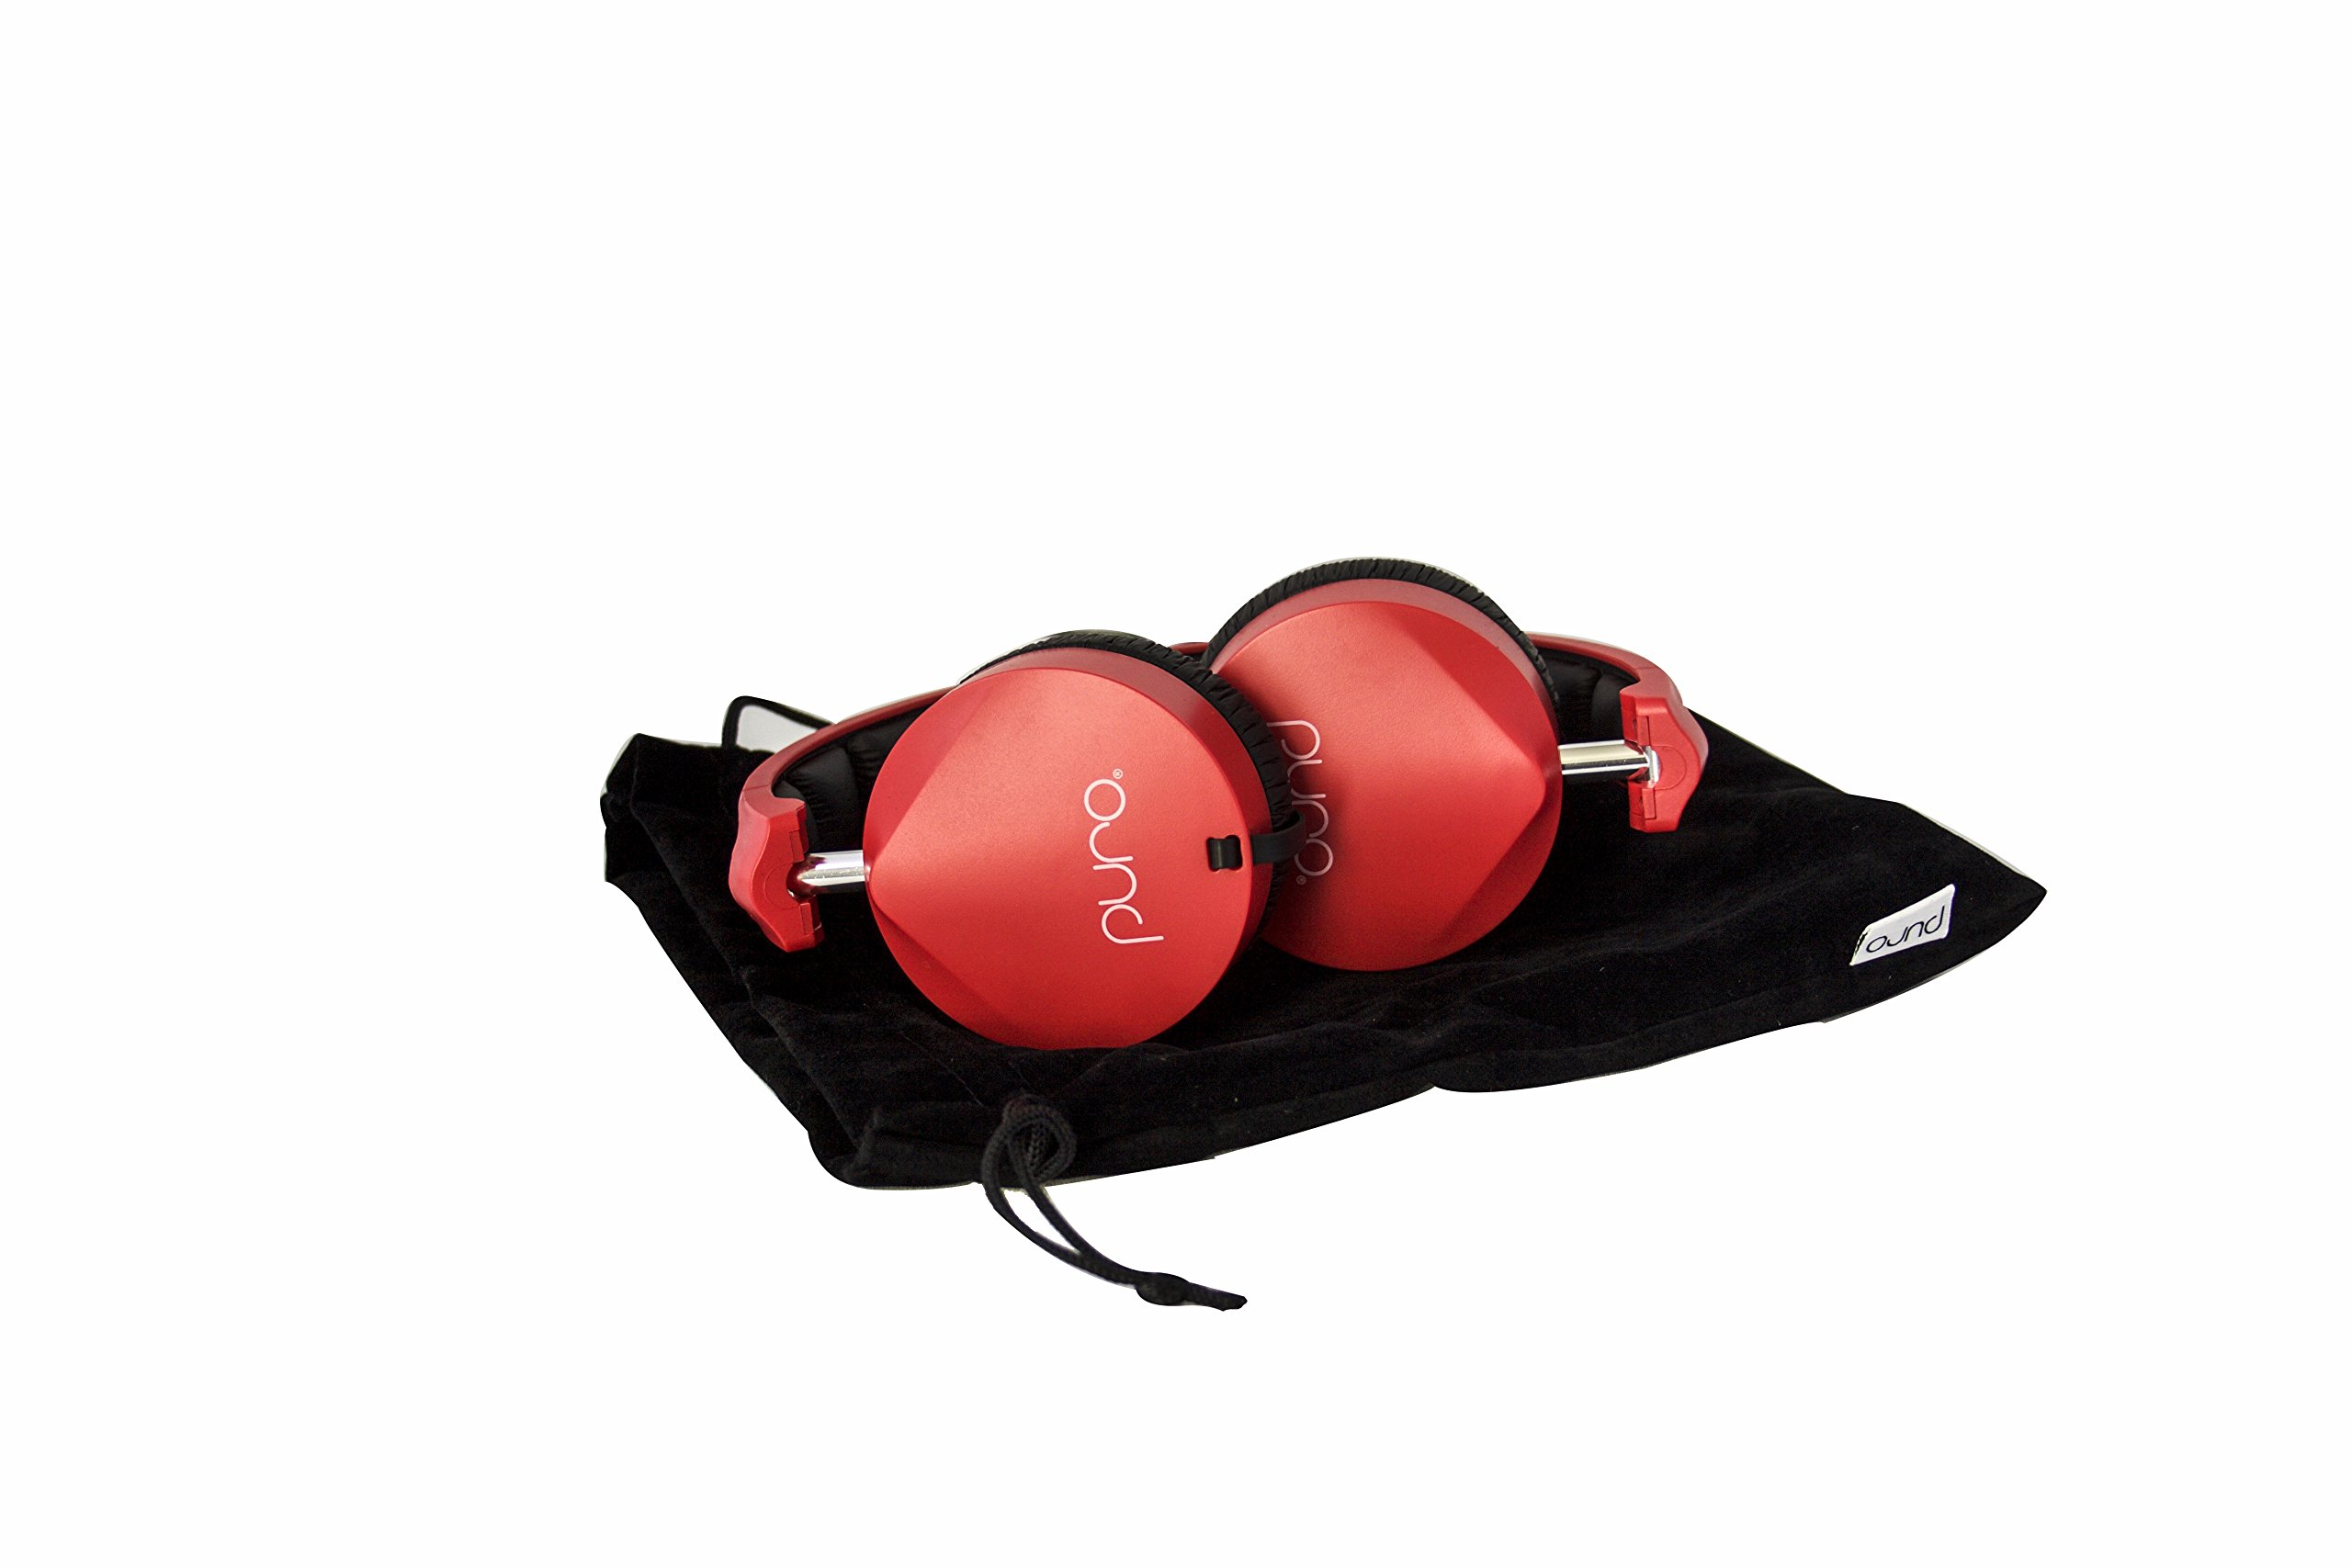 Puro Sound Labs OEH200 Over-Ear Headphones Kids Students Foldable Earphones with Volume Limiting, Noise Isolation, Microphone, Lightweight and Water-Proof for Apple iPhone and Android - OEH200 Red